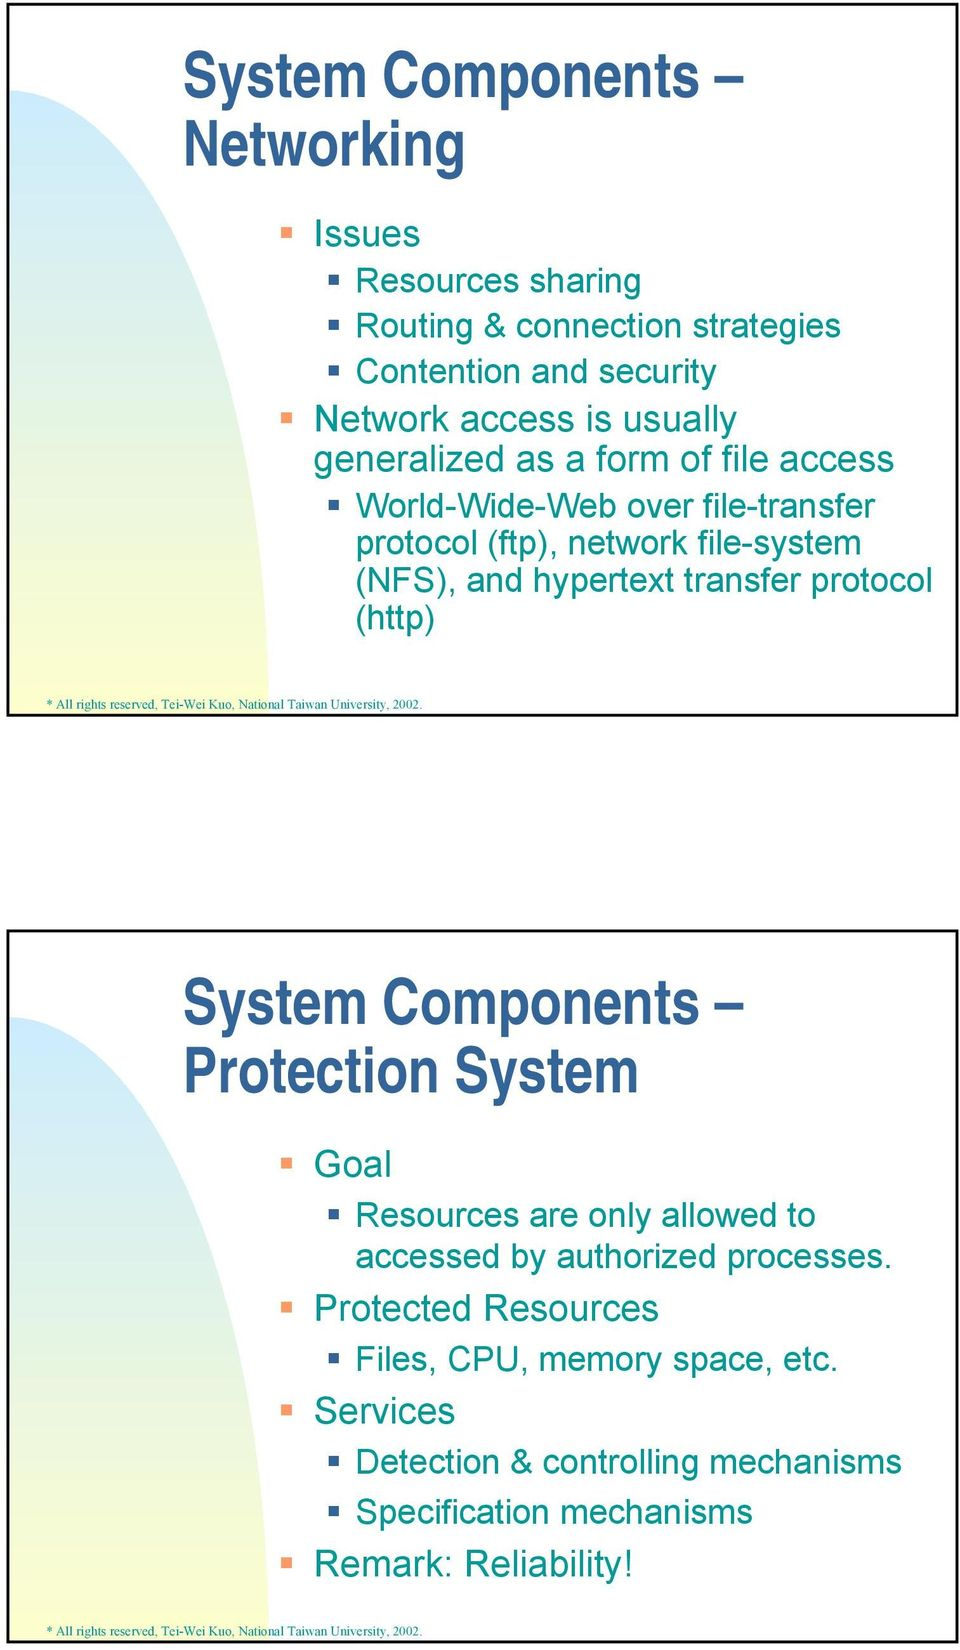 hypertext transfer protocol (http) System Components Protection System Goal Resources are only allowed to accessed by authorized